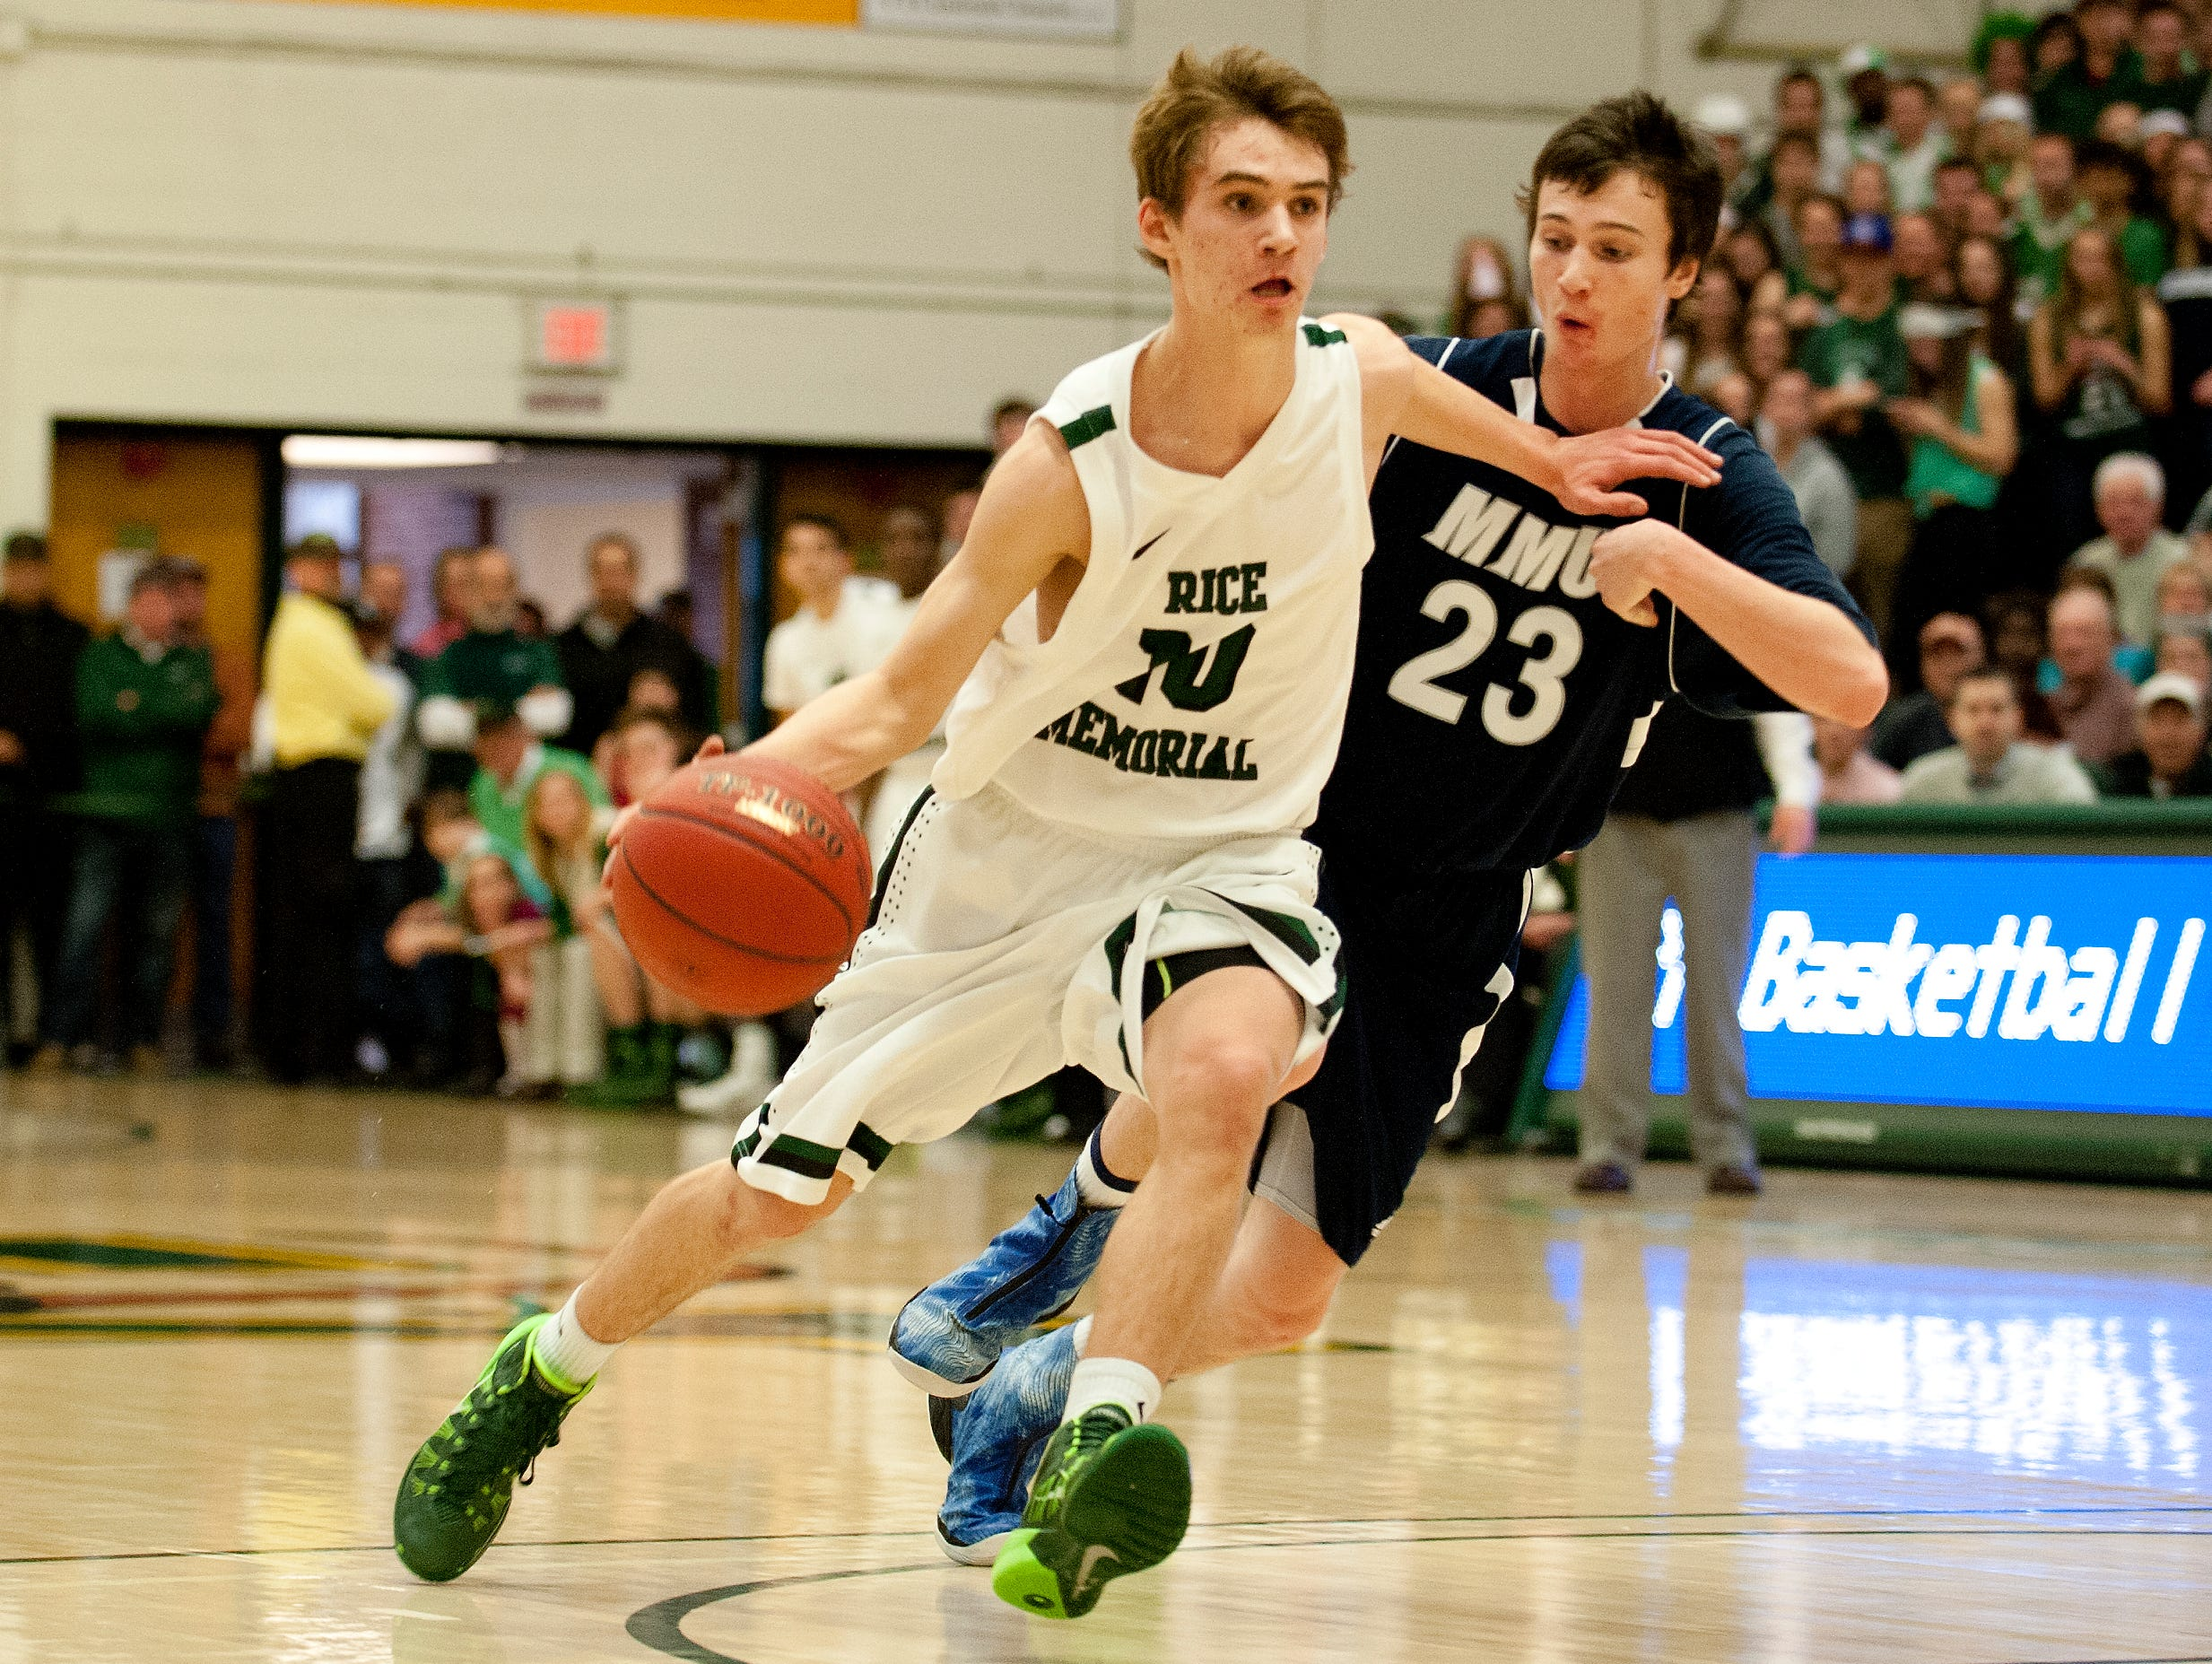 Rice's Tommy Fitzgerald drives pasta defender during the Division I boys basketball championship game in March.